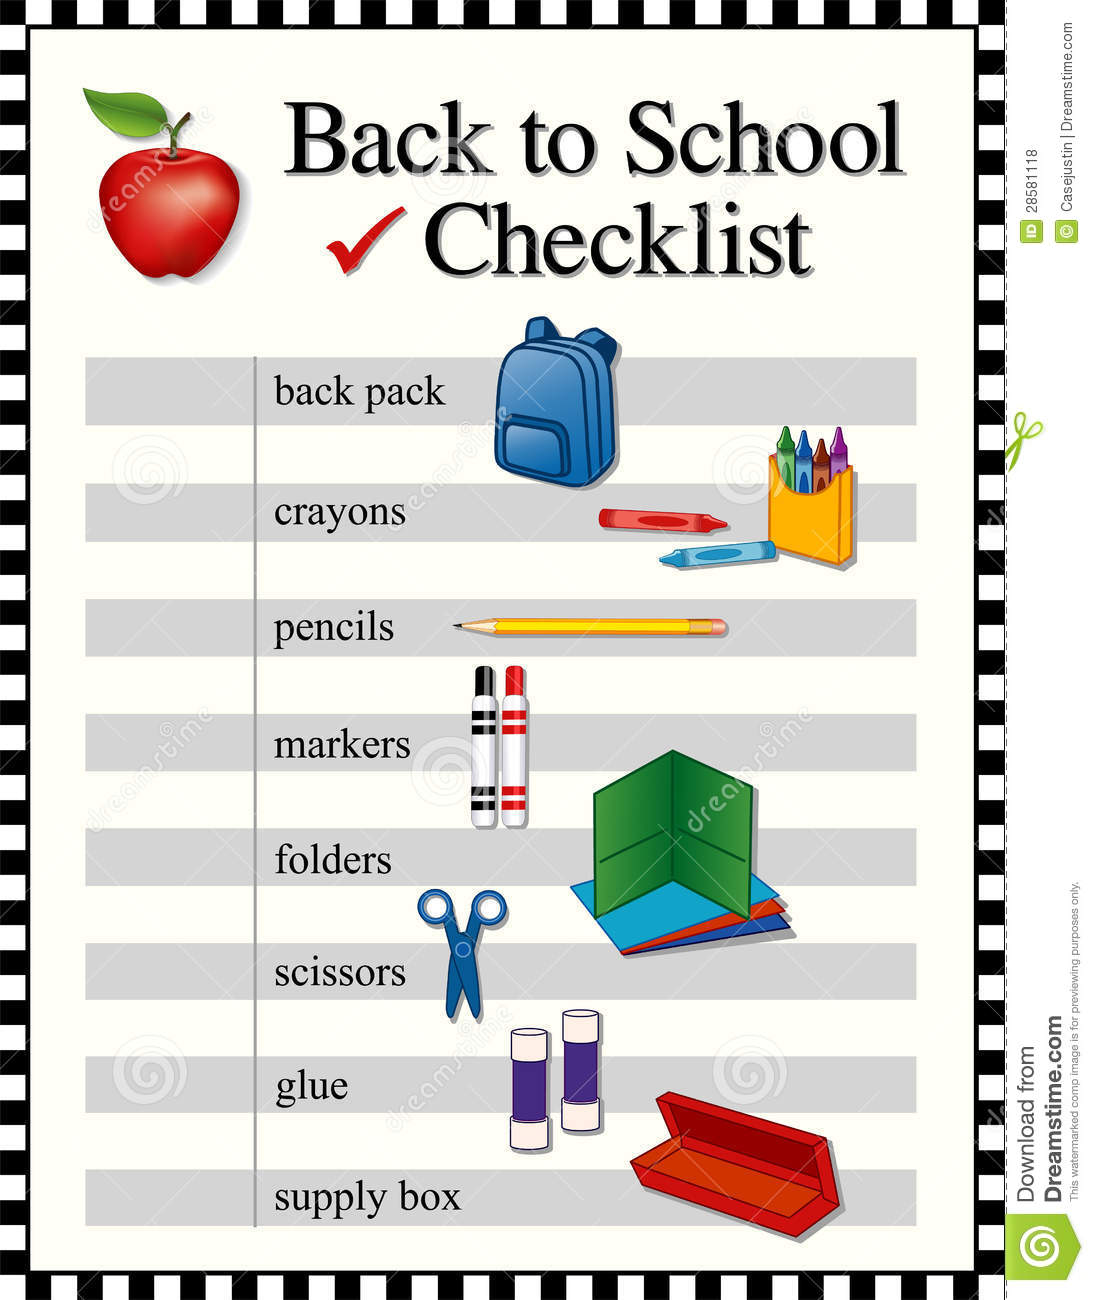 Back To School Checklist Royalty Free Stock Photos Image